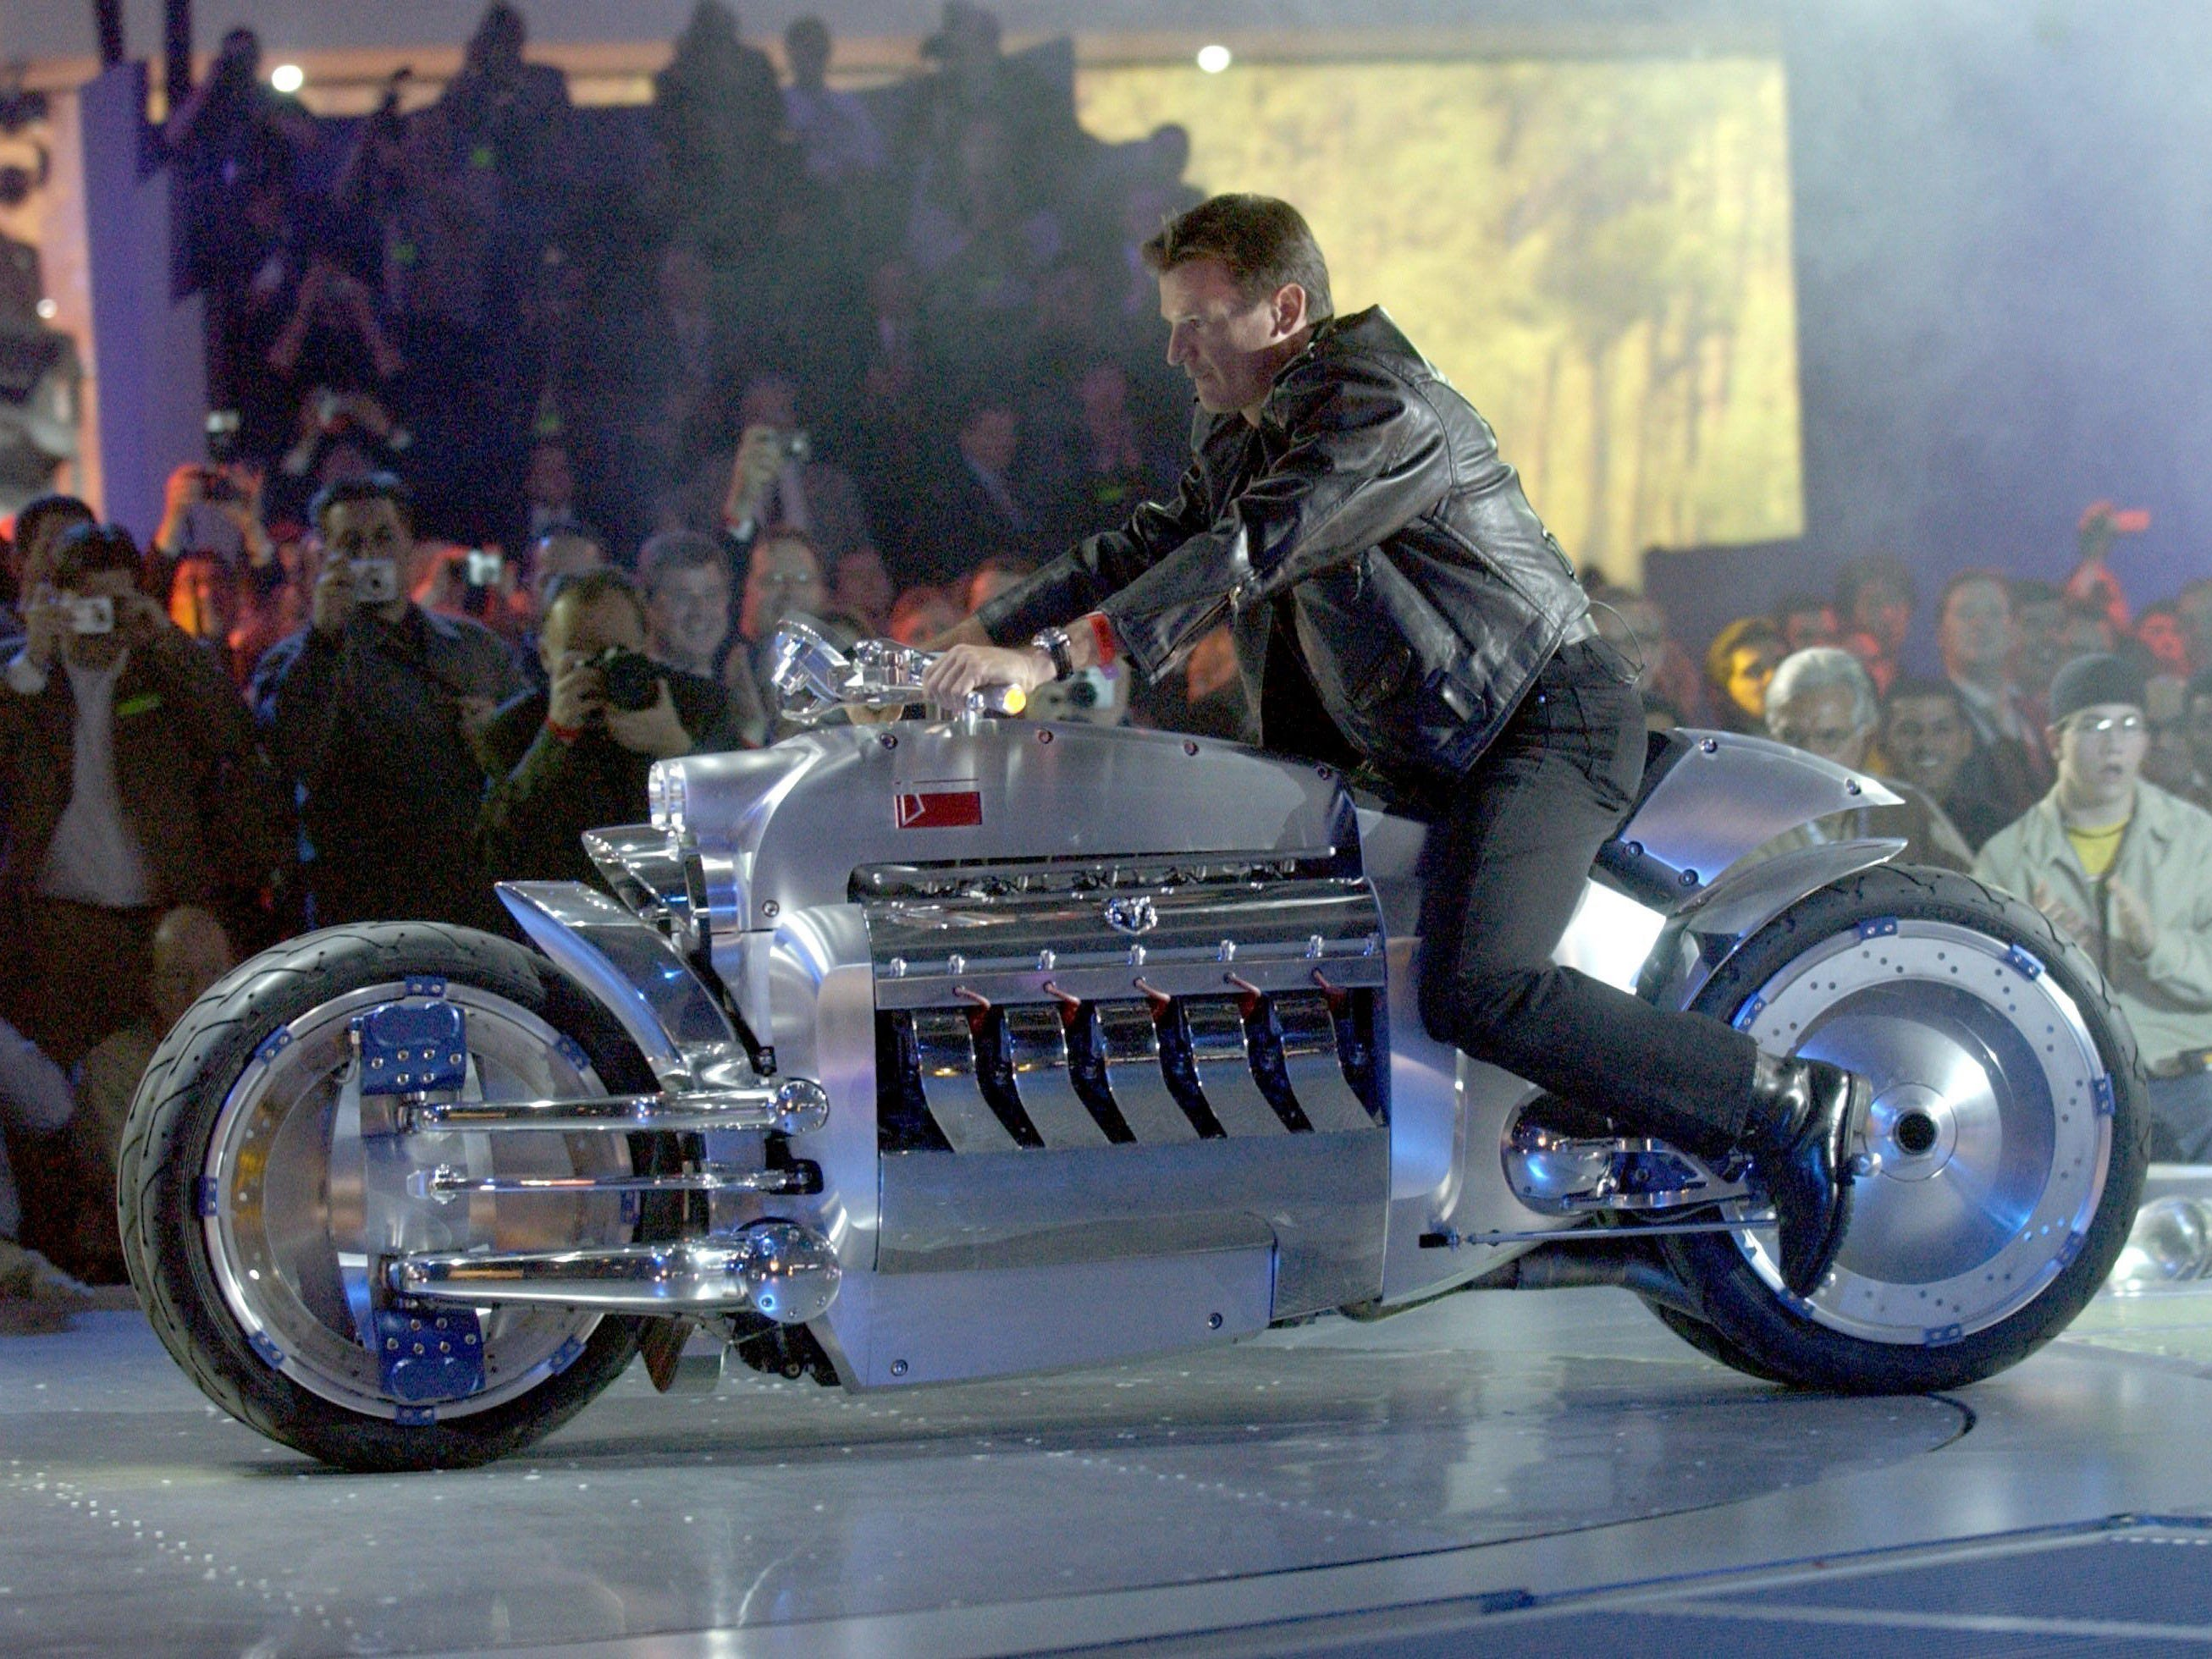 In 2003, then-Chrysler Group COO Wolfgang Bernhard drove a Tomahawk concept motorcycle powered by a V10 engine from the Dodge Viper onto the stage at the North American International Auto Show.